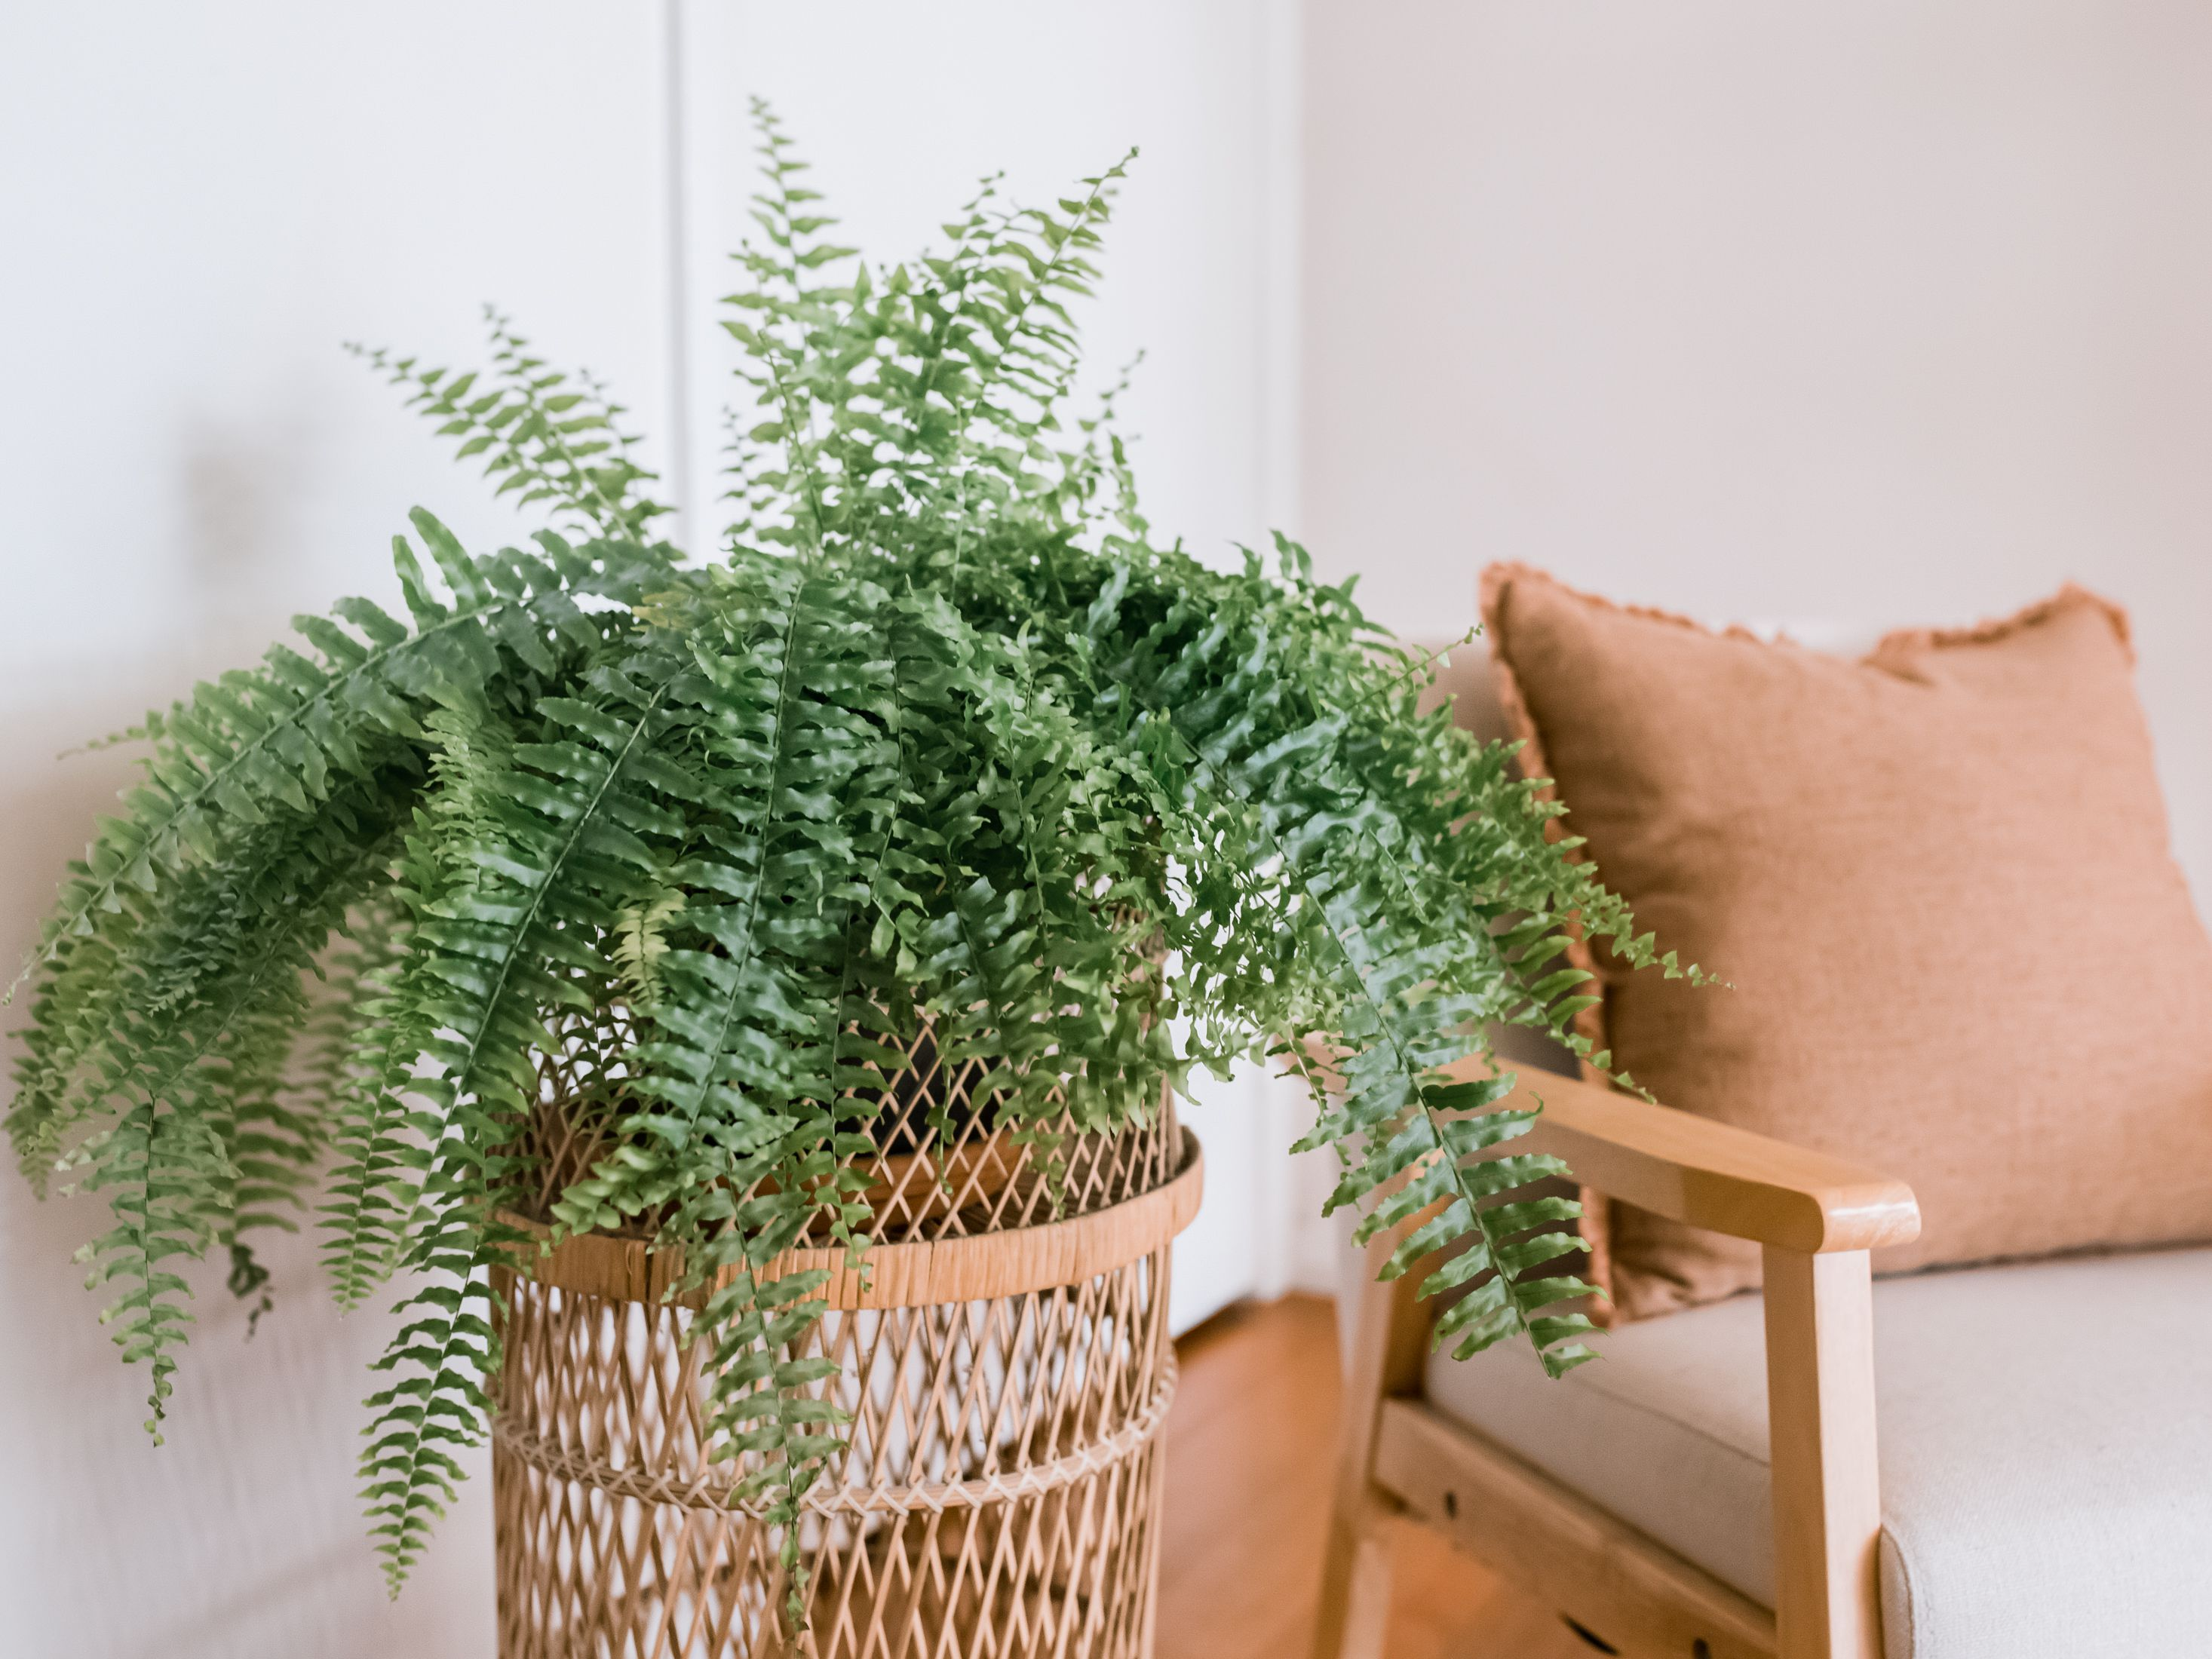 Guide to Growing Boston Ferns (Nephrolepis) Indoors